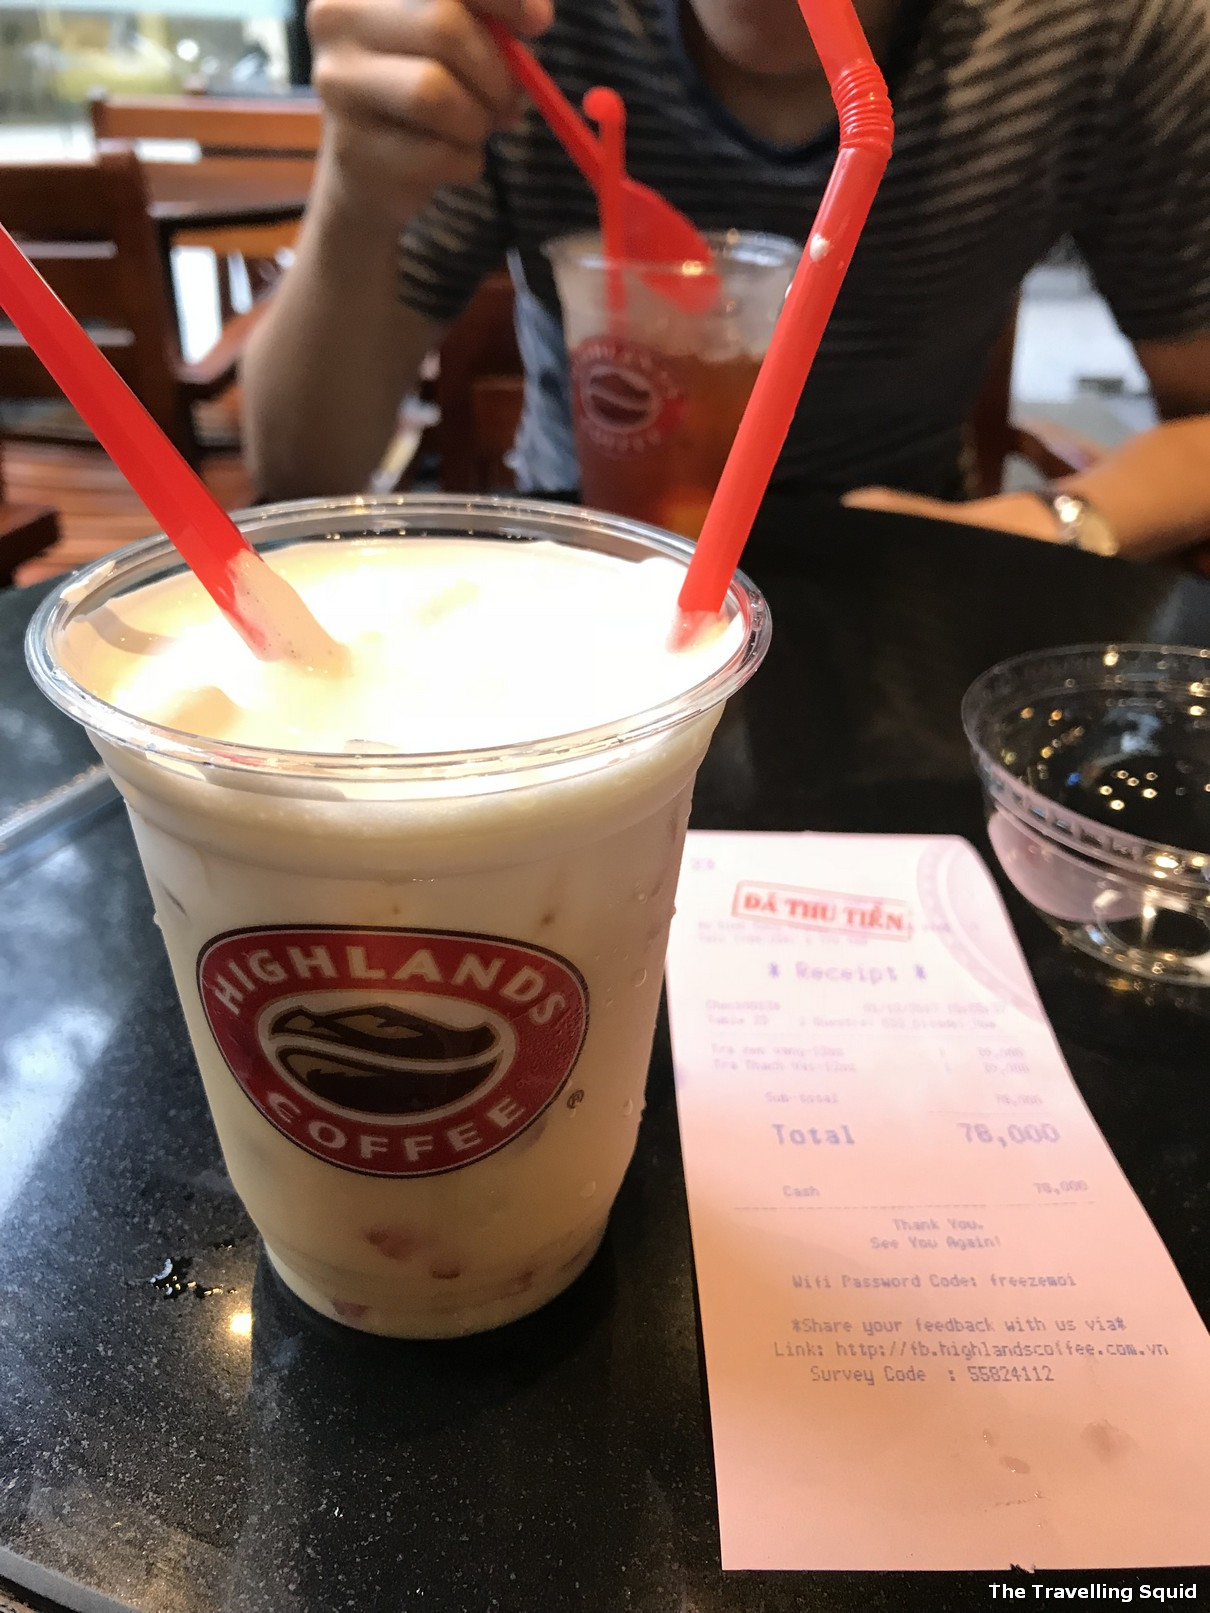 highland coffee imperial city hue